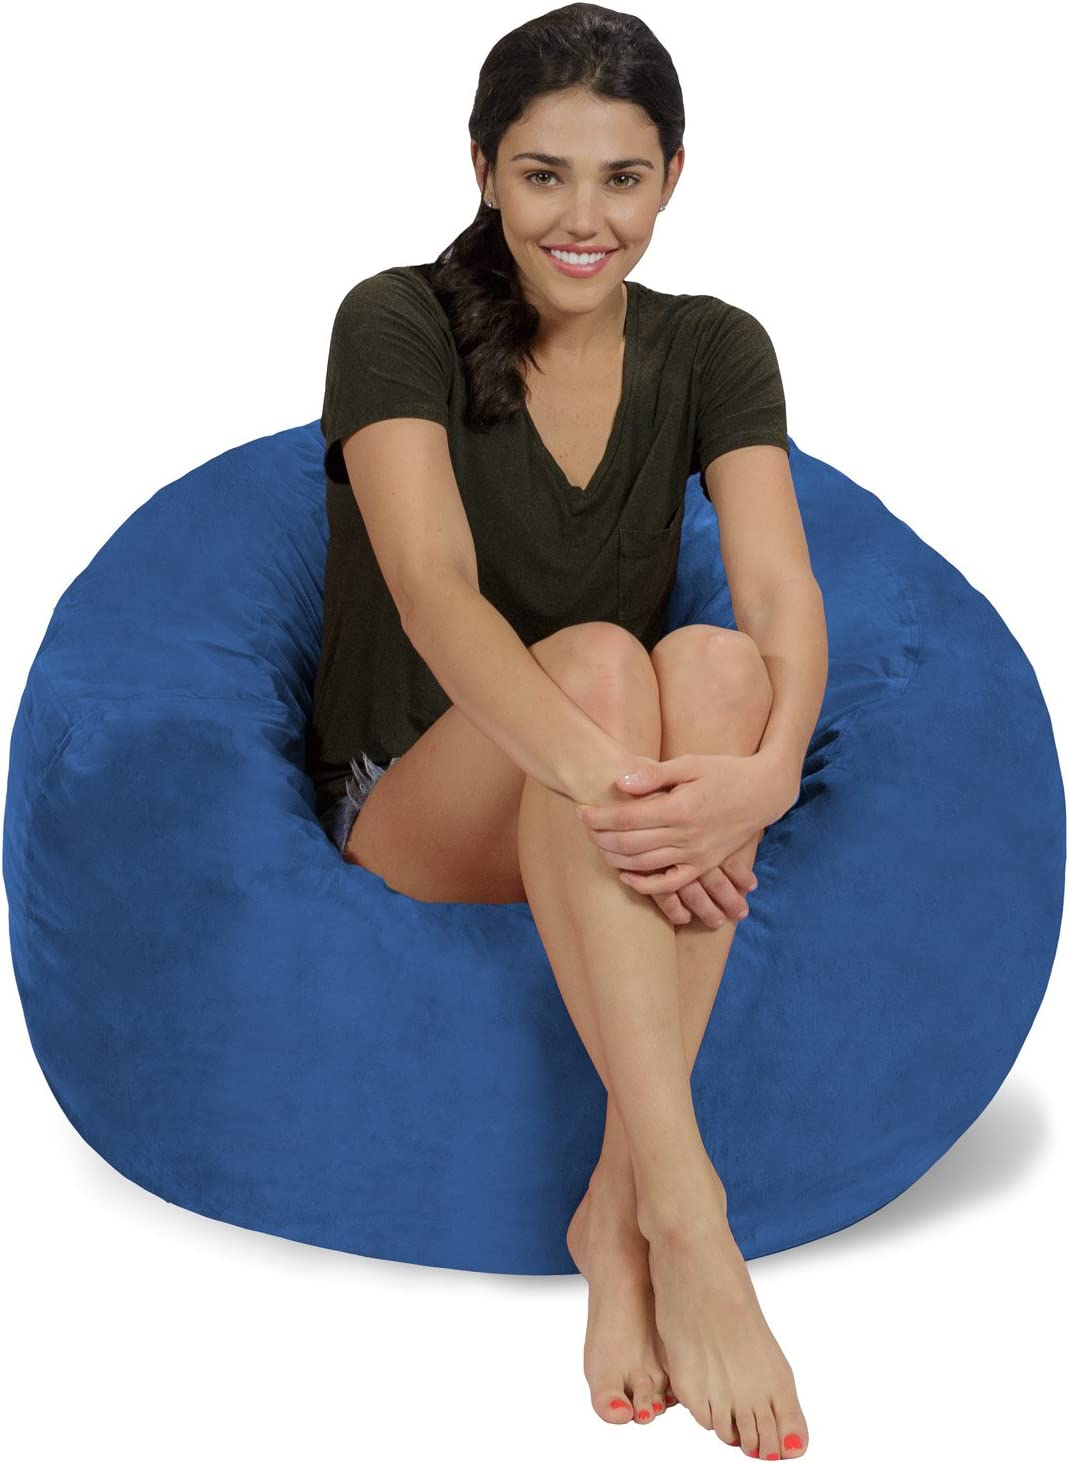 Chill Sack Bean Bag Chair: Large 3' Memory Foam Furniture Bean Bag - Big Sofa with Soft Micro Fiber Cover - Royal Blue Micro Suede